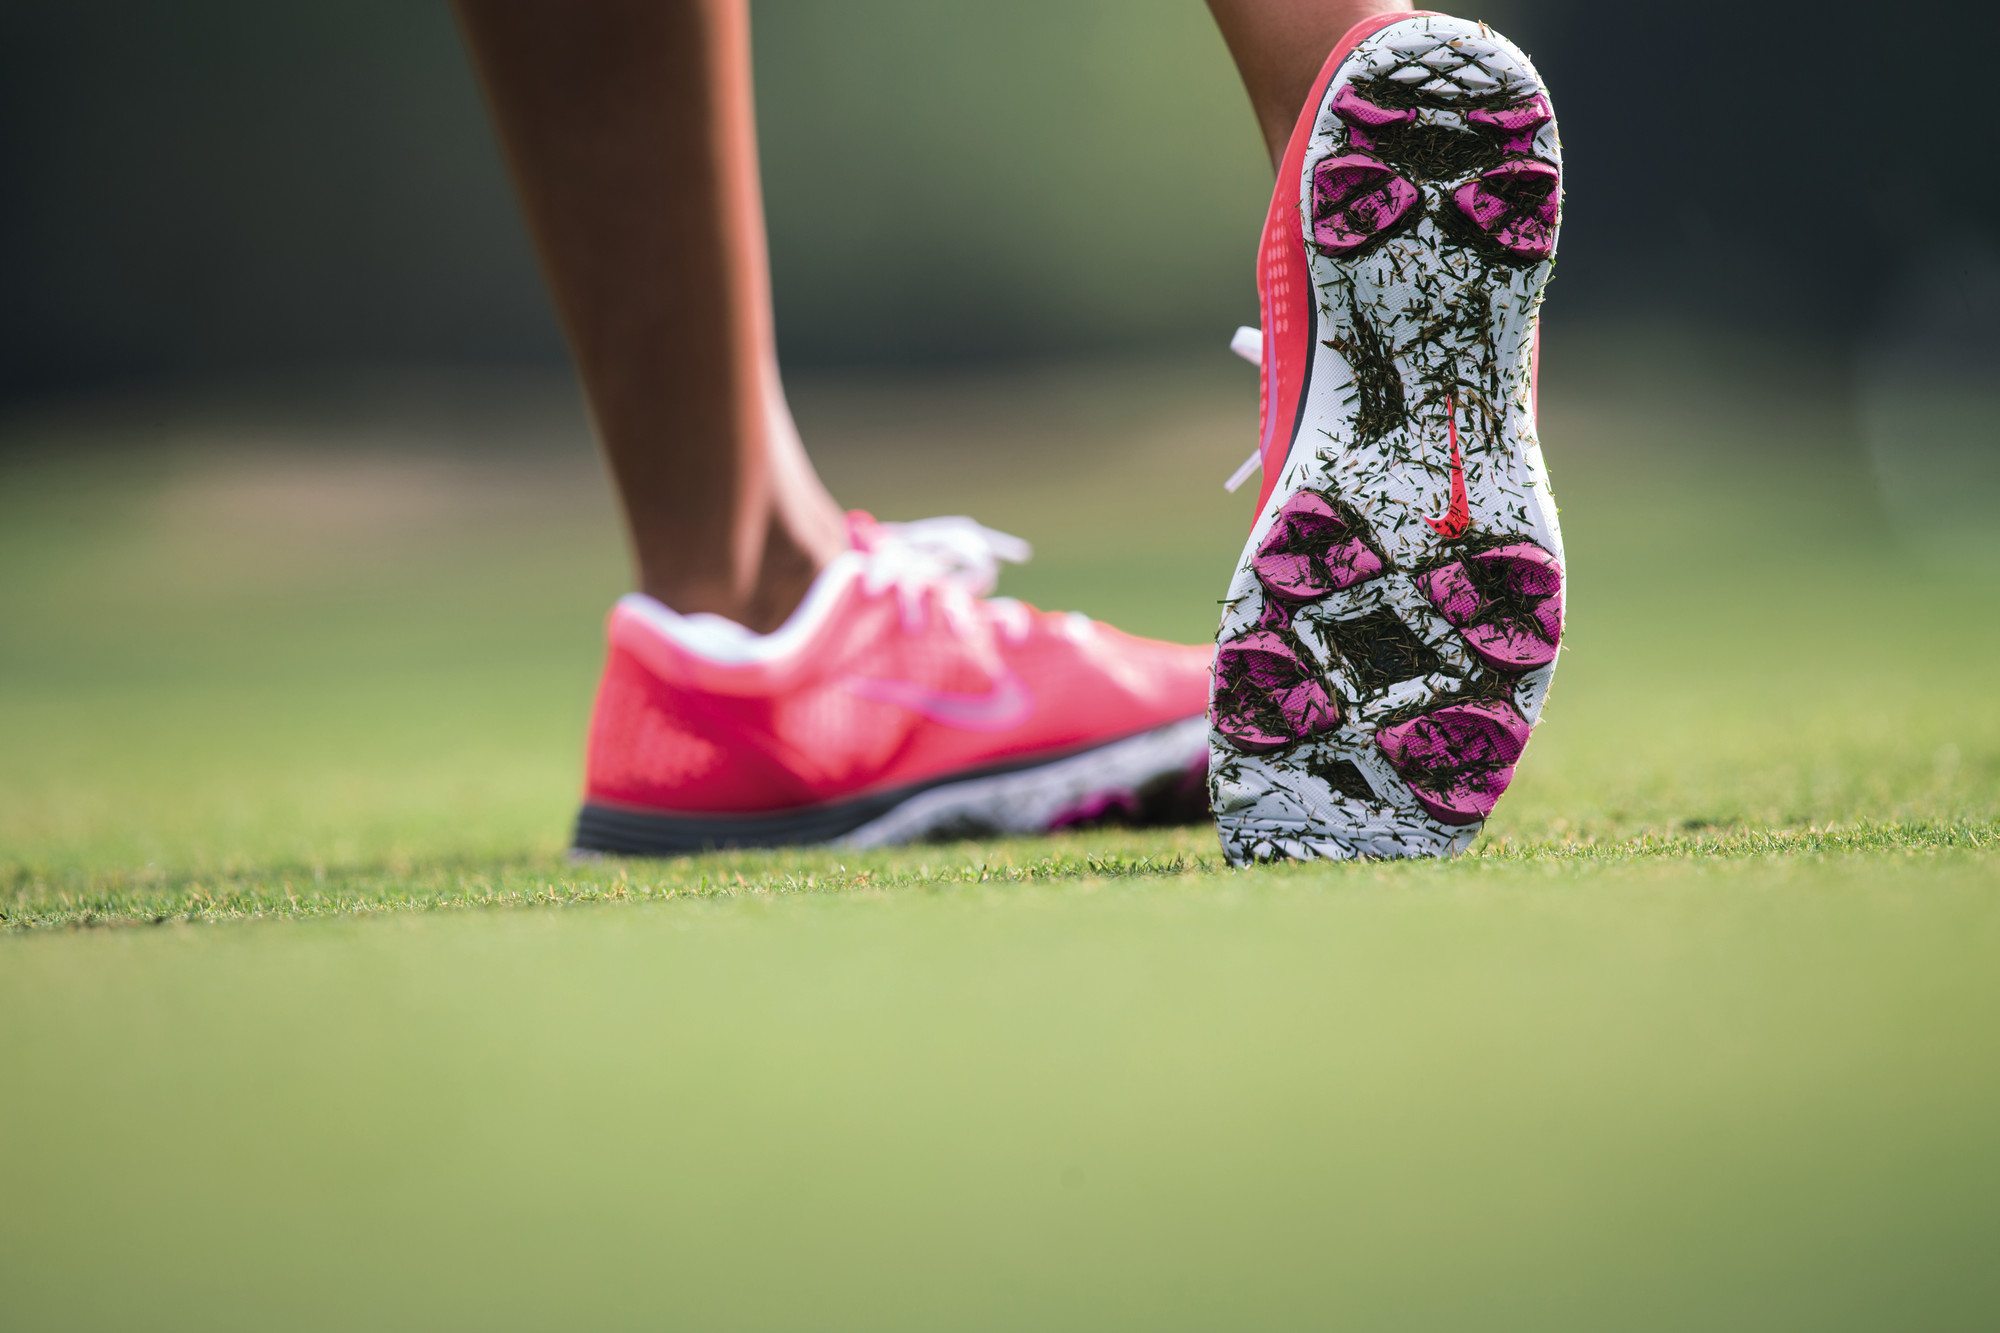 The Best New Golf Gear For Women - DICK'S Sporting Goods - 453 AND